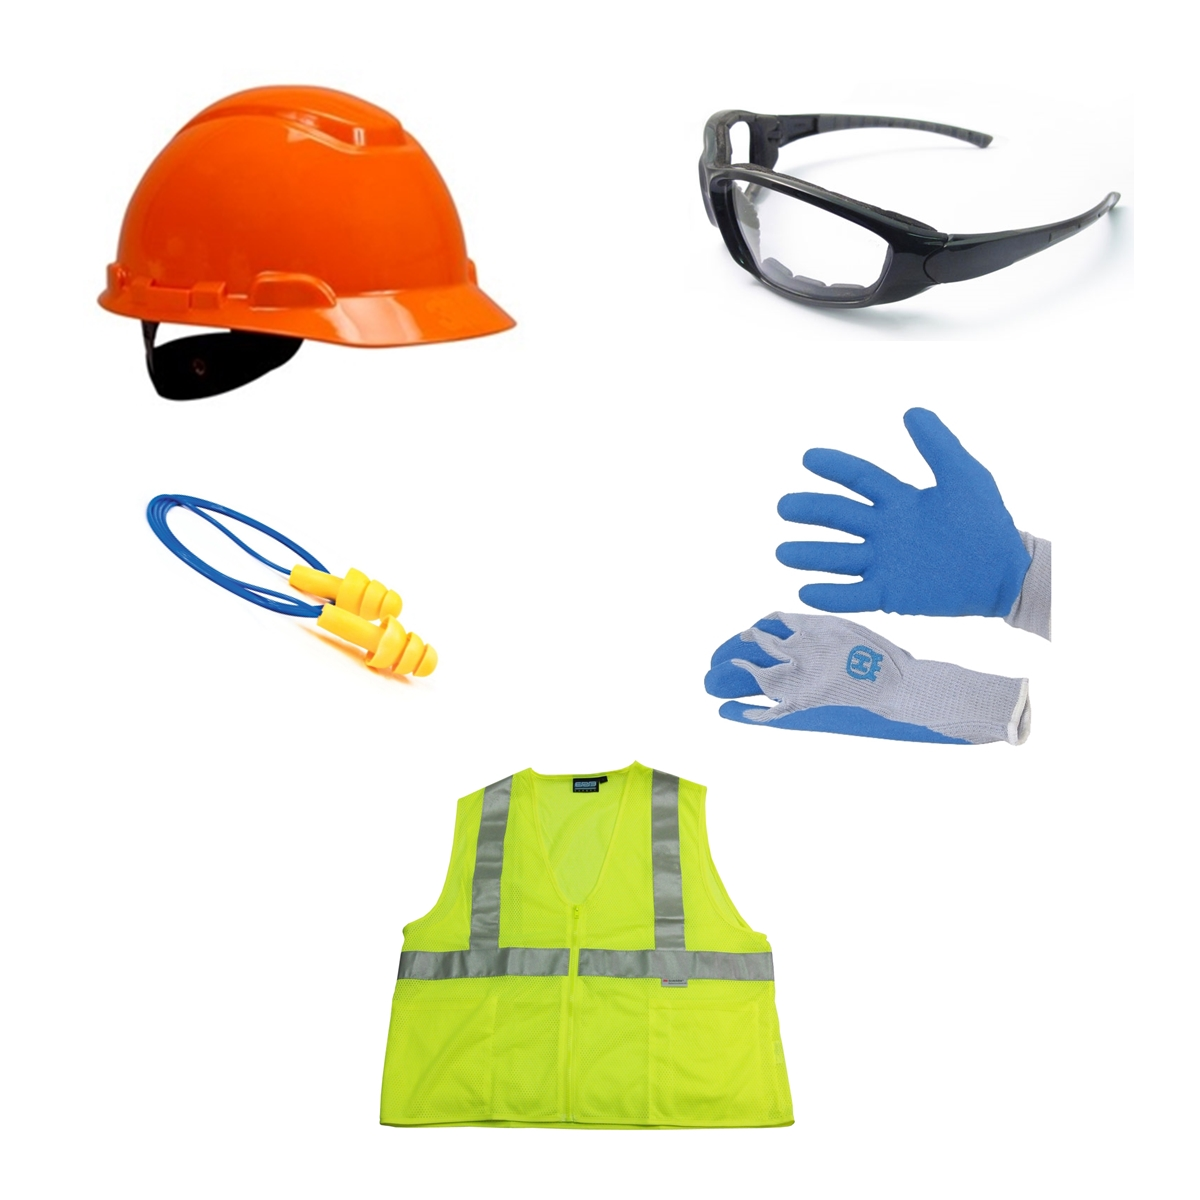 Basic New Hire PPE Kit